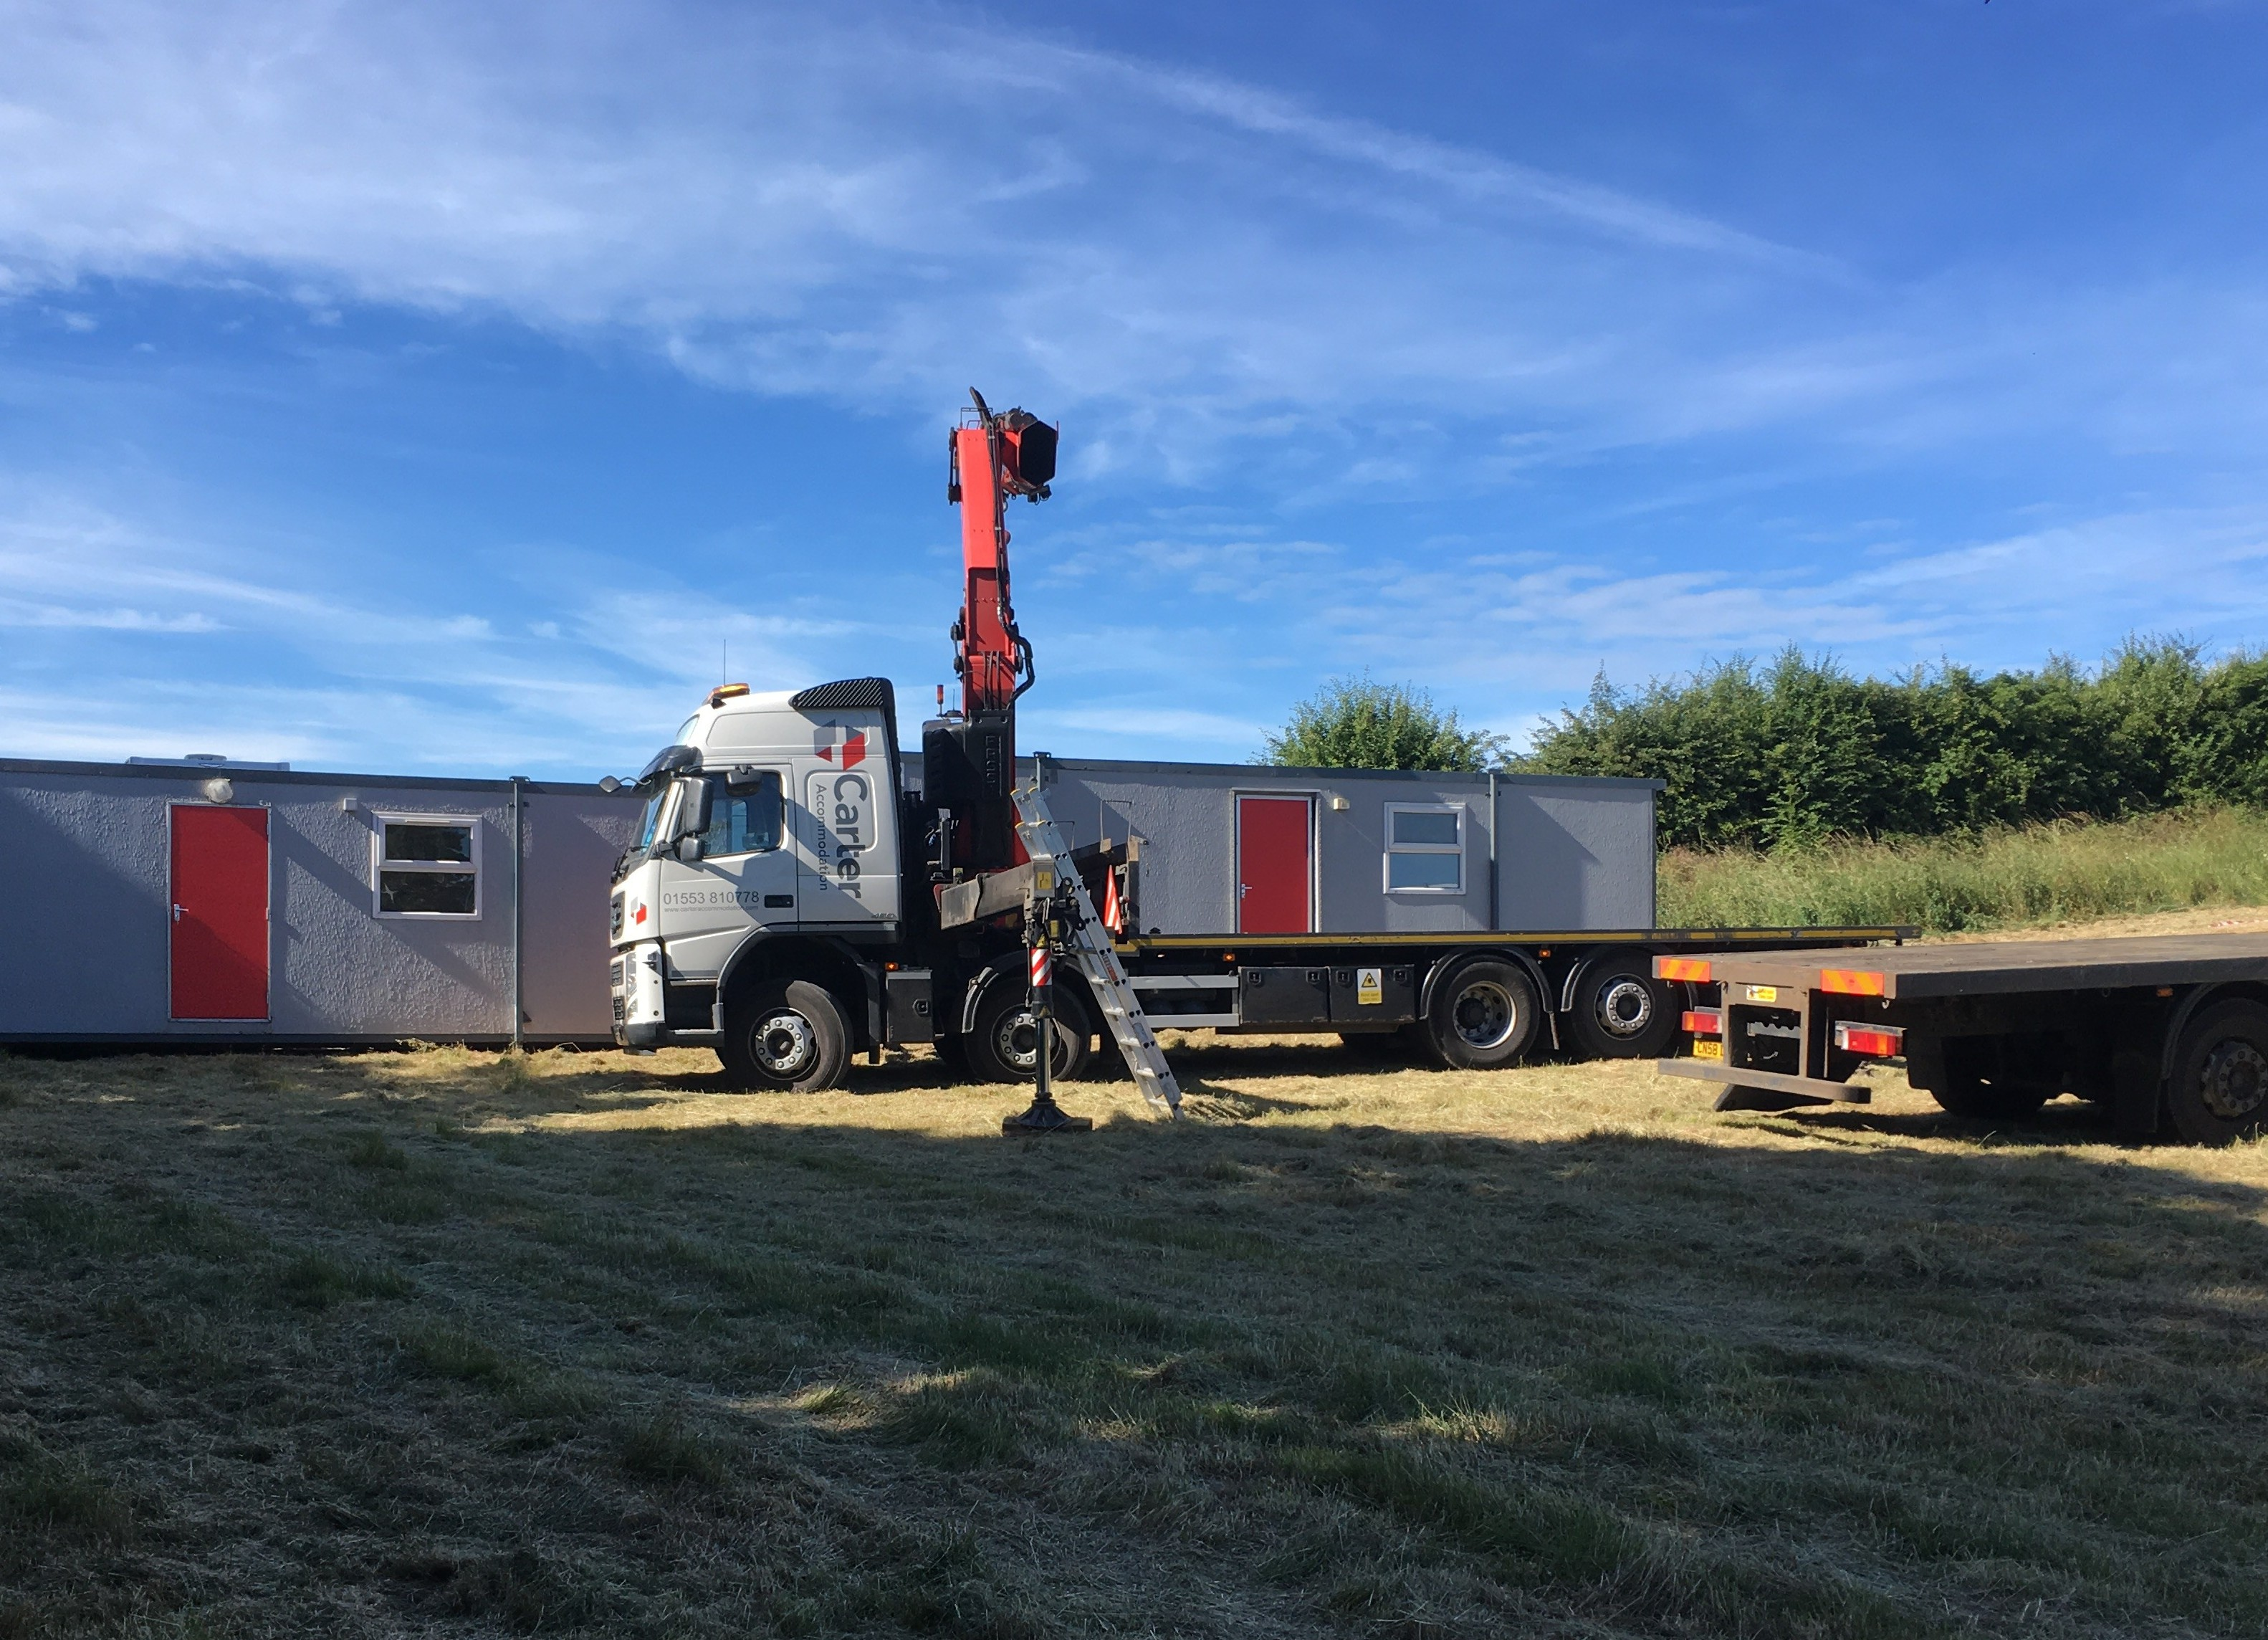 Monday: the finds and teaching hut portacabins arrive on site